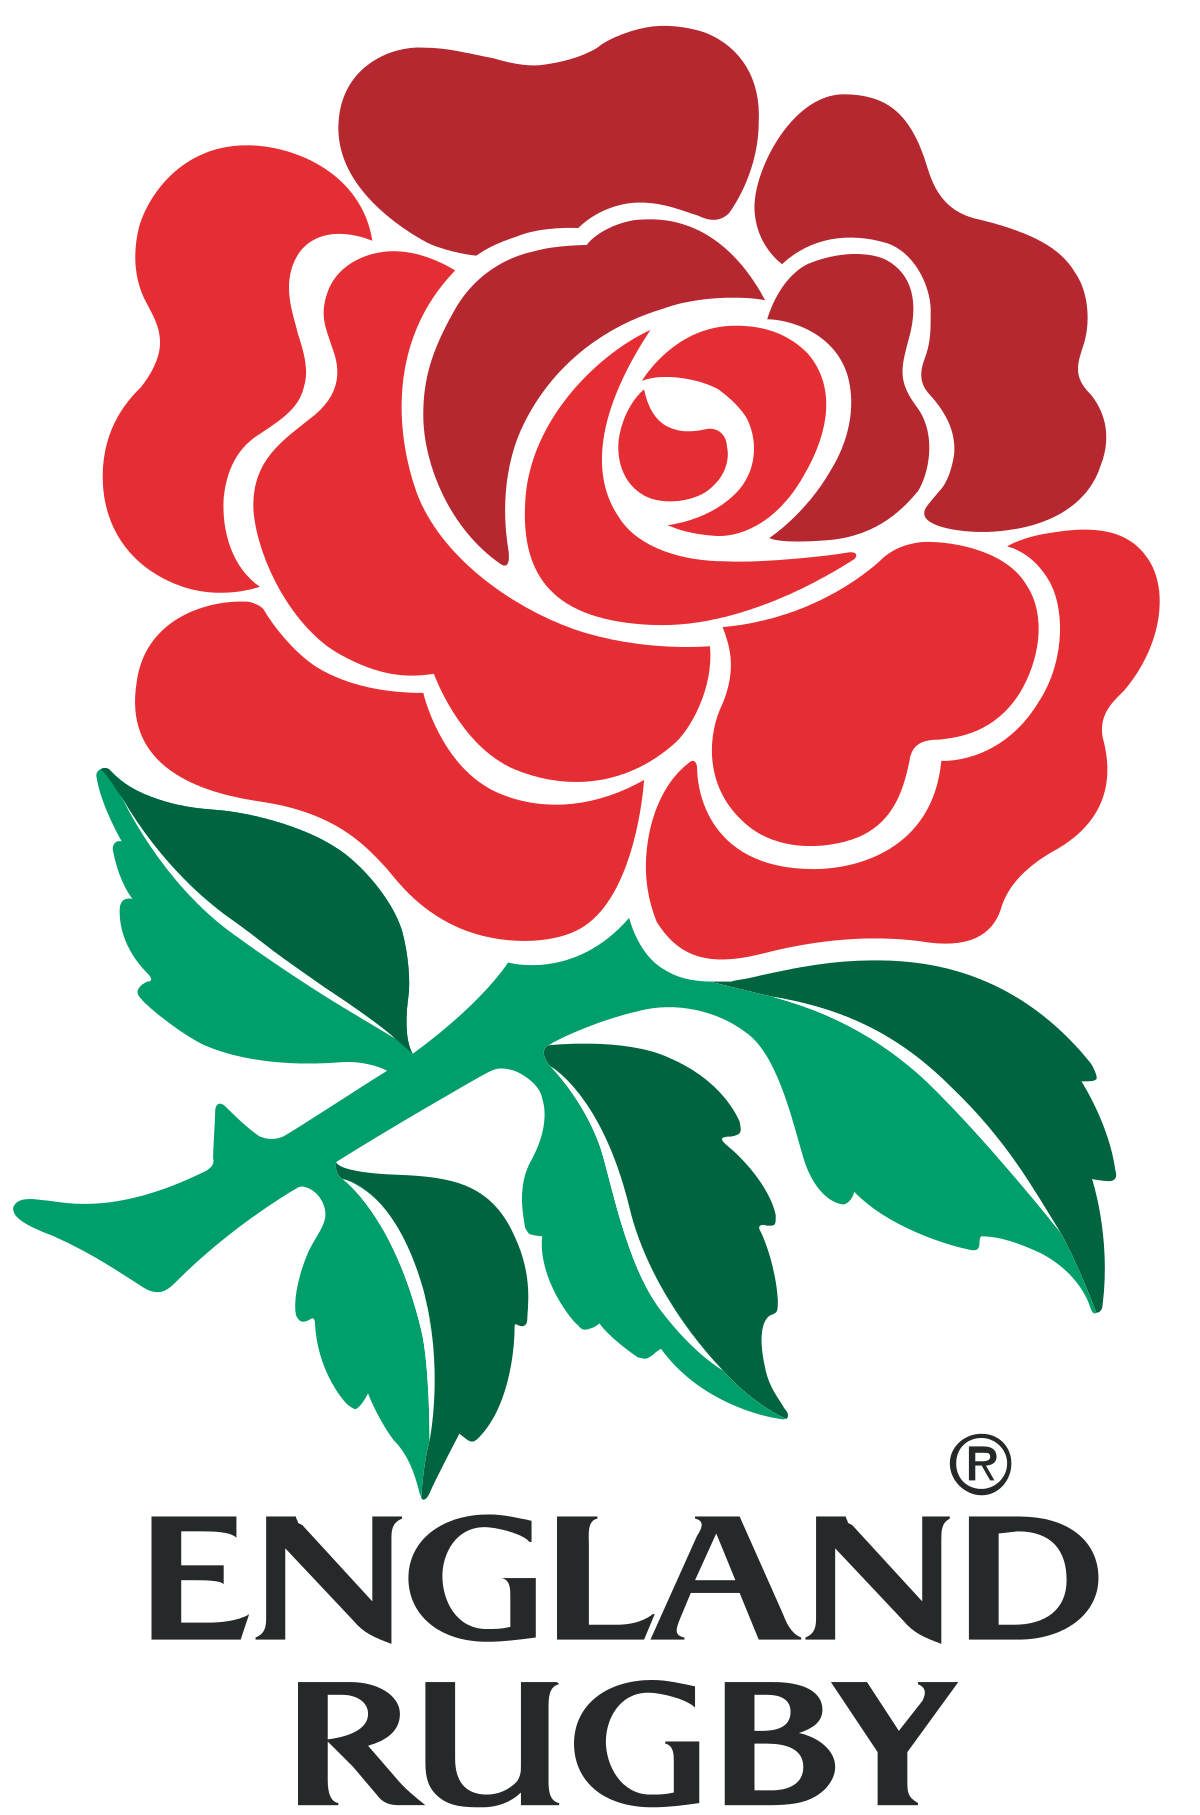 Http Ift Tt 2xvdxam That When The Rugby Football Union Formed In 1871 Wasps Representative Missed The Meeting Rugby Wallpaper England Rugby Union Rugby Logo